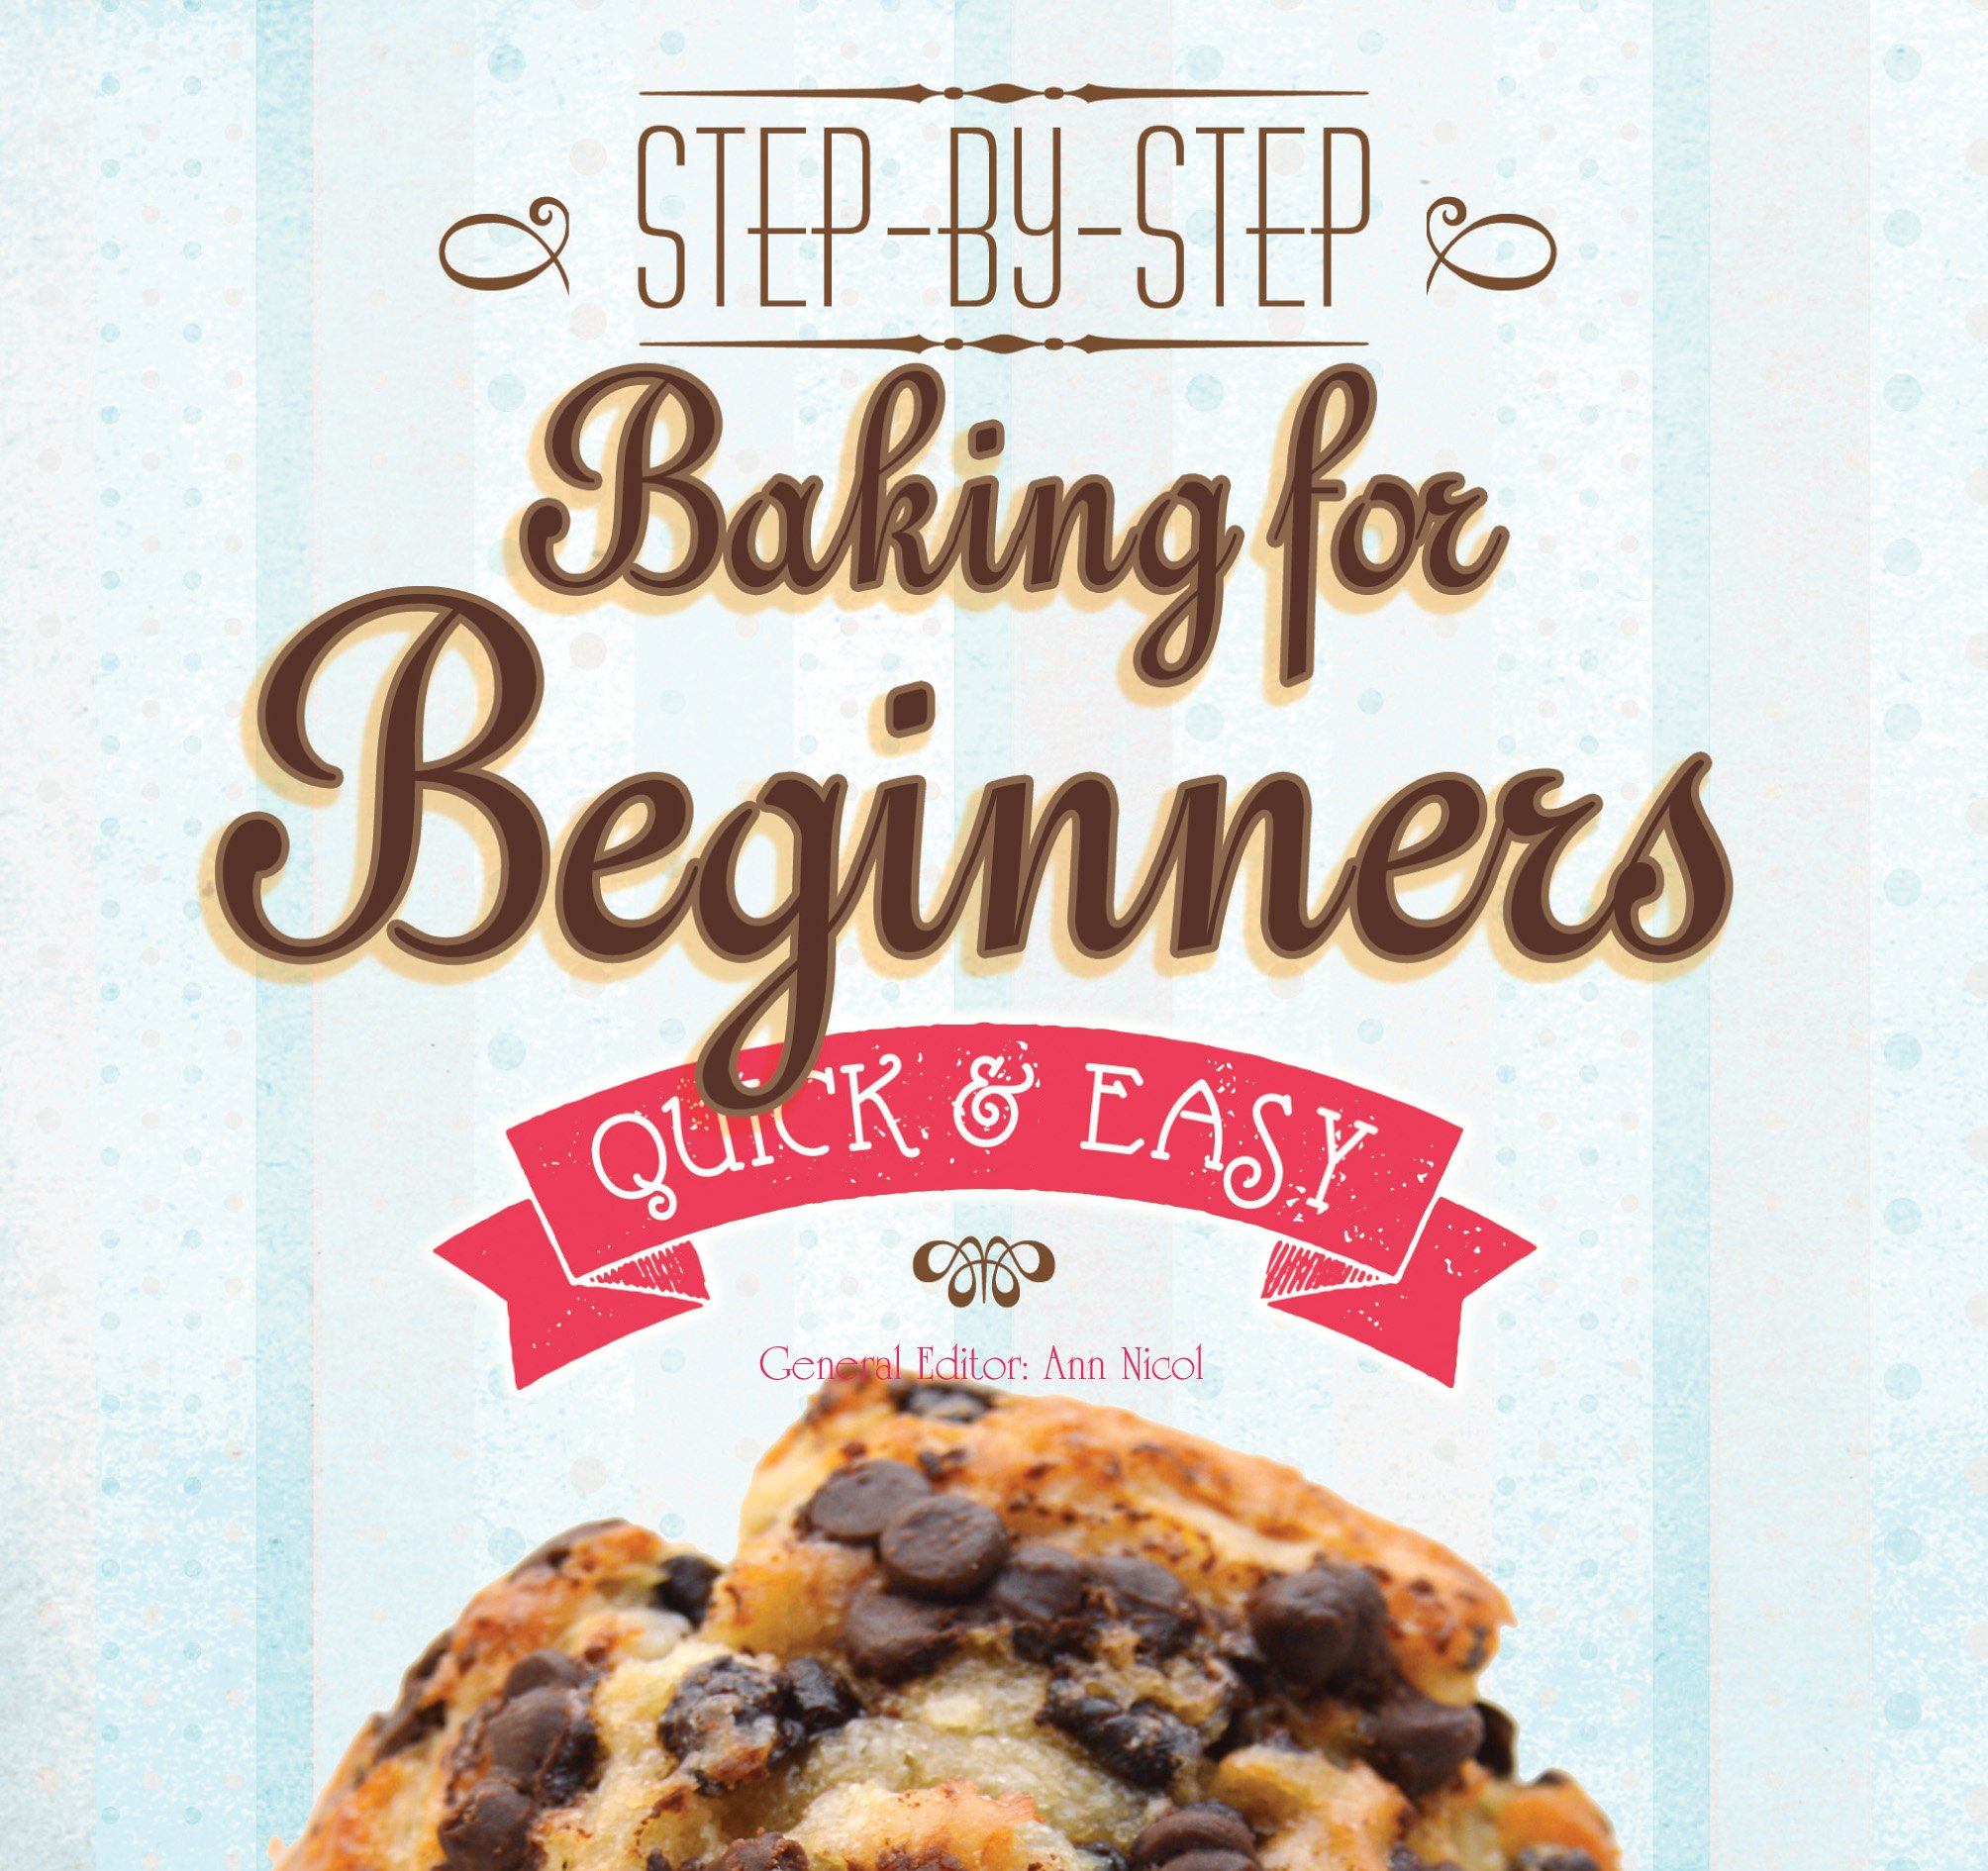 baking for beginners stepbystep quick easy quick easy proven recipes